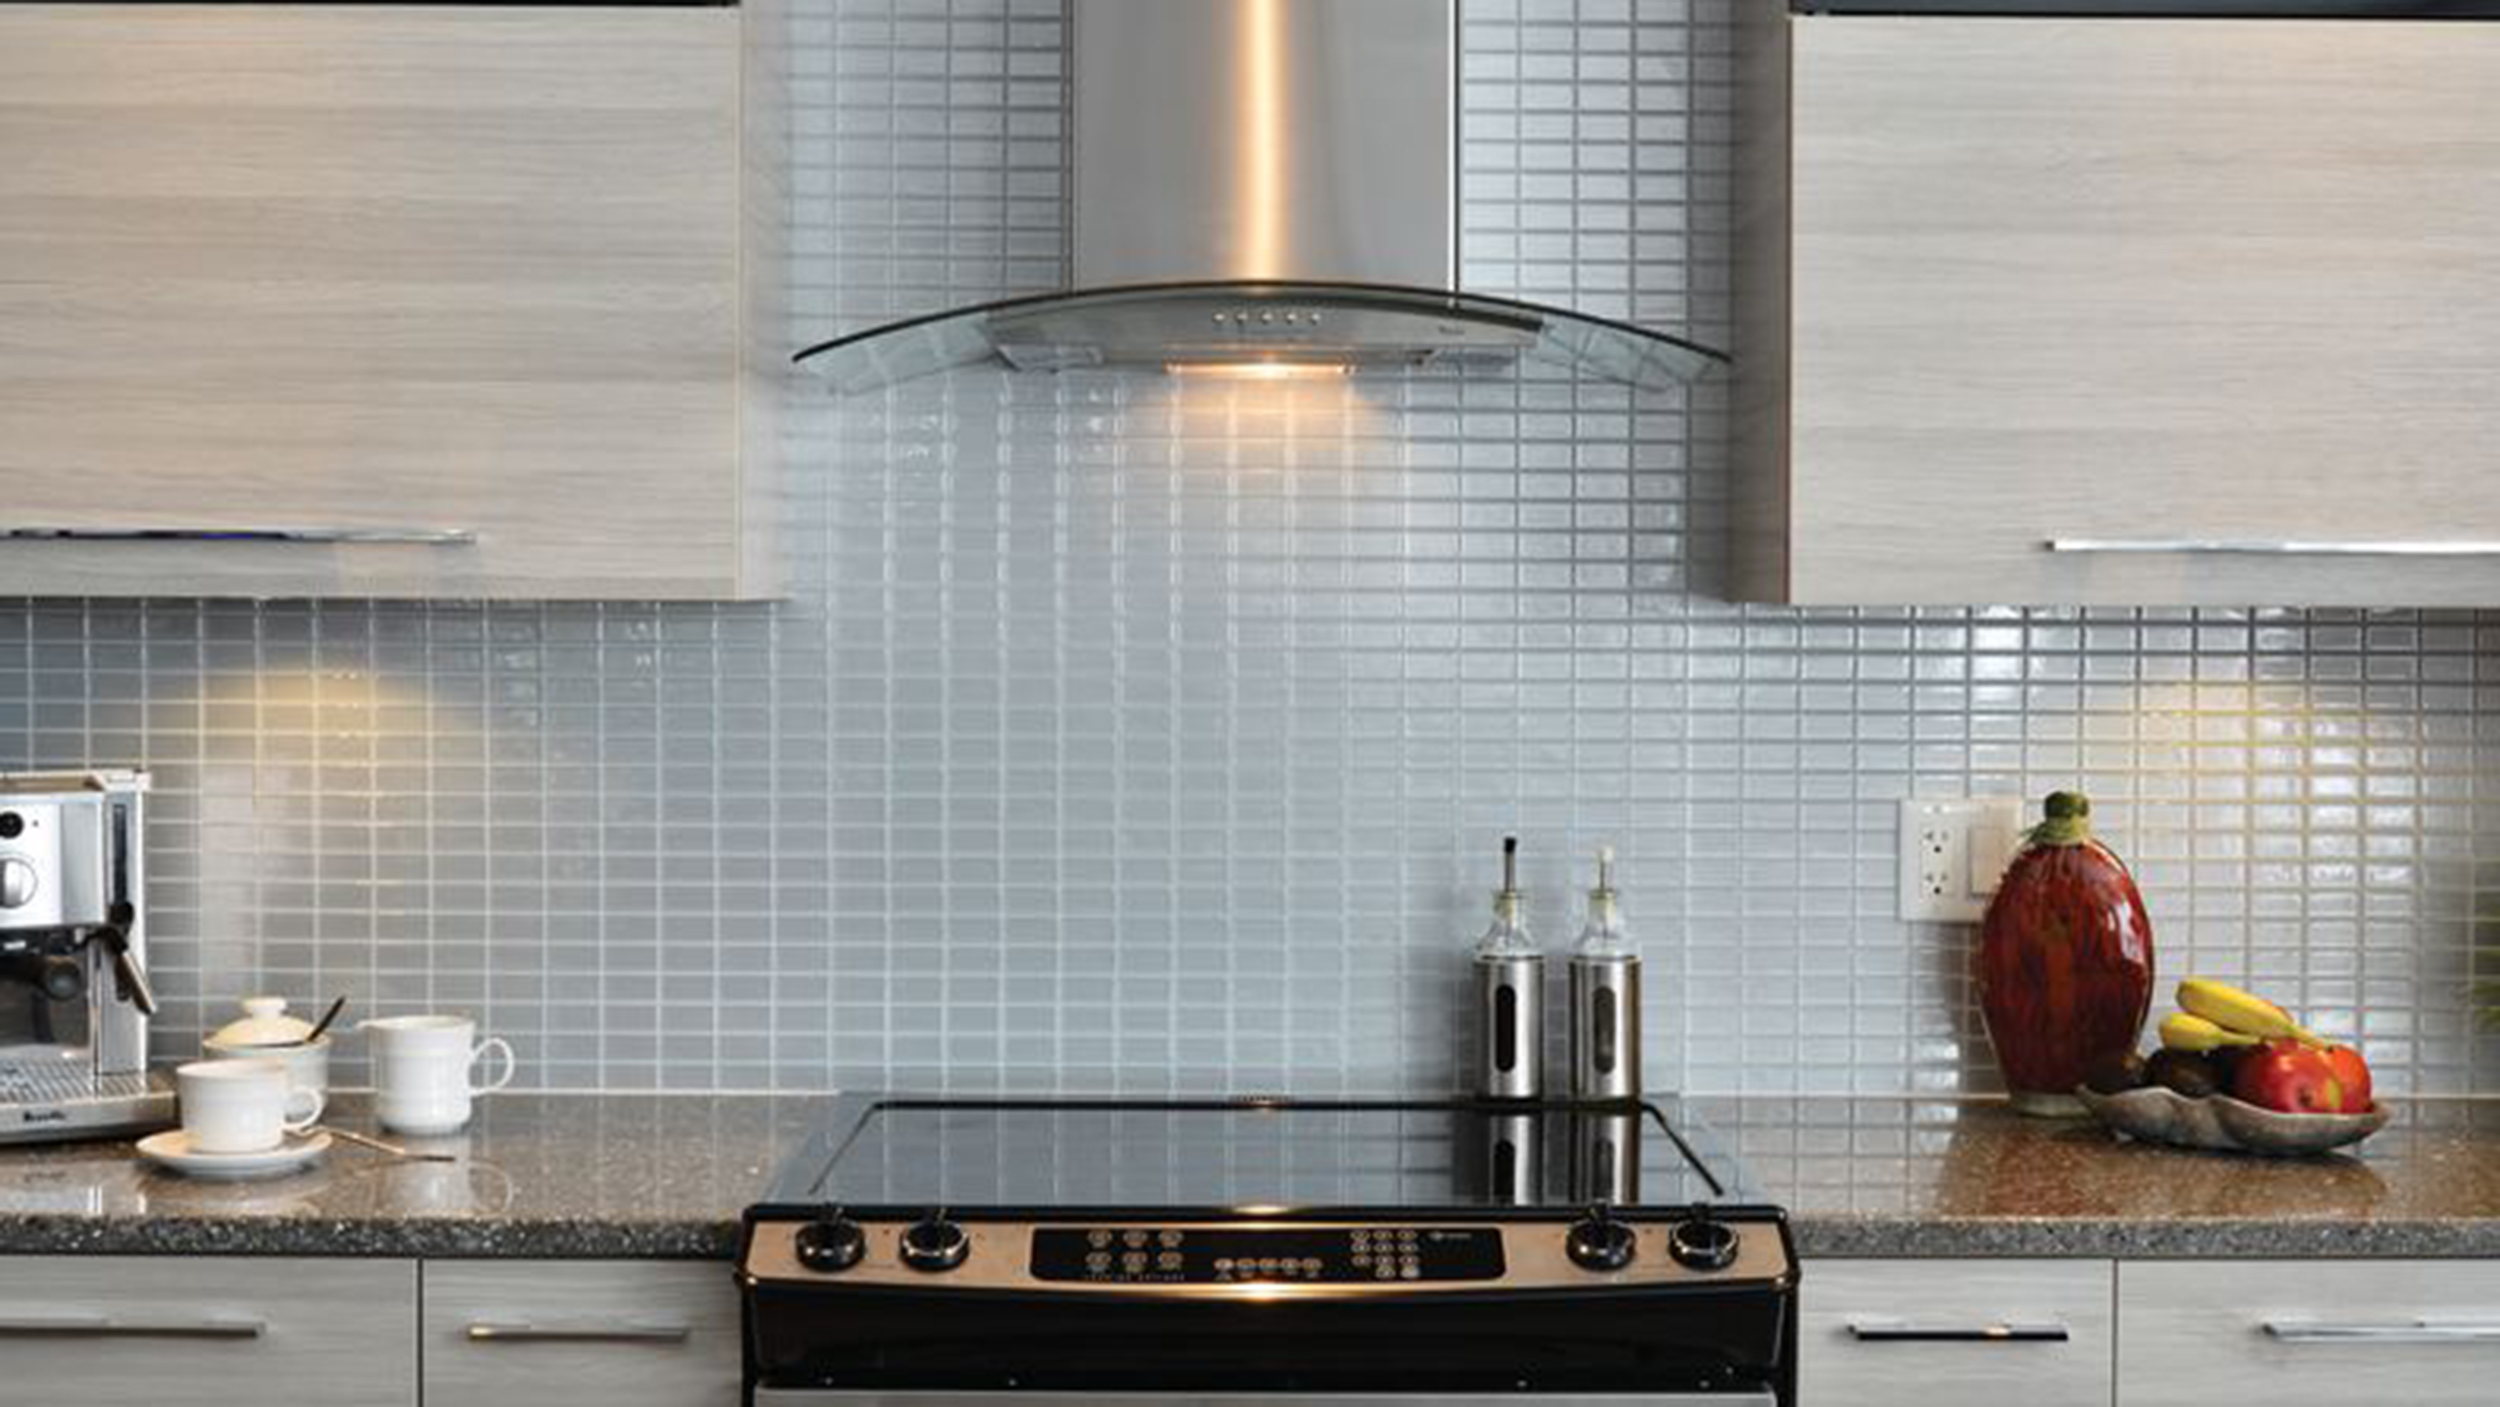 Kitchen tile makeover use smart tiles to update your backsplash dailygadgetfo Gallery